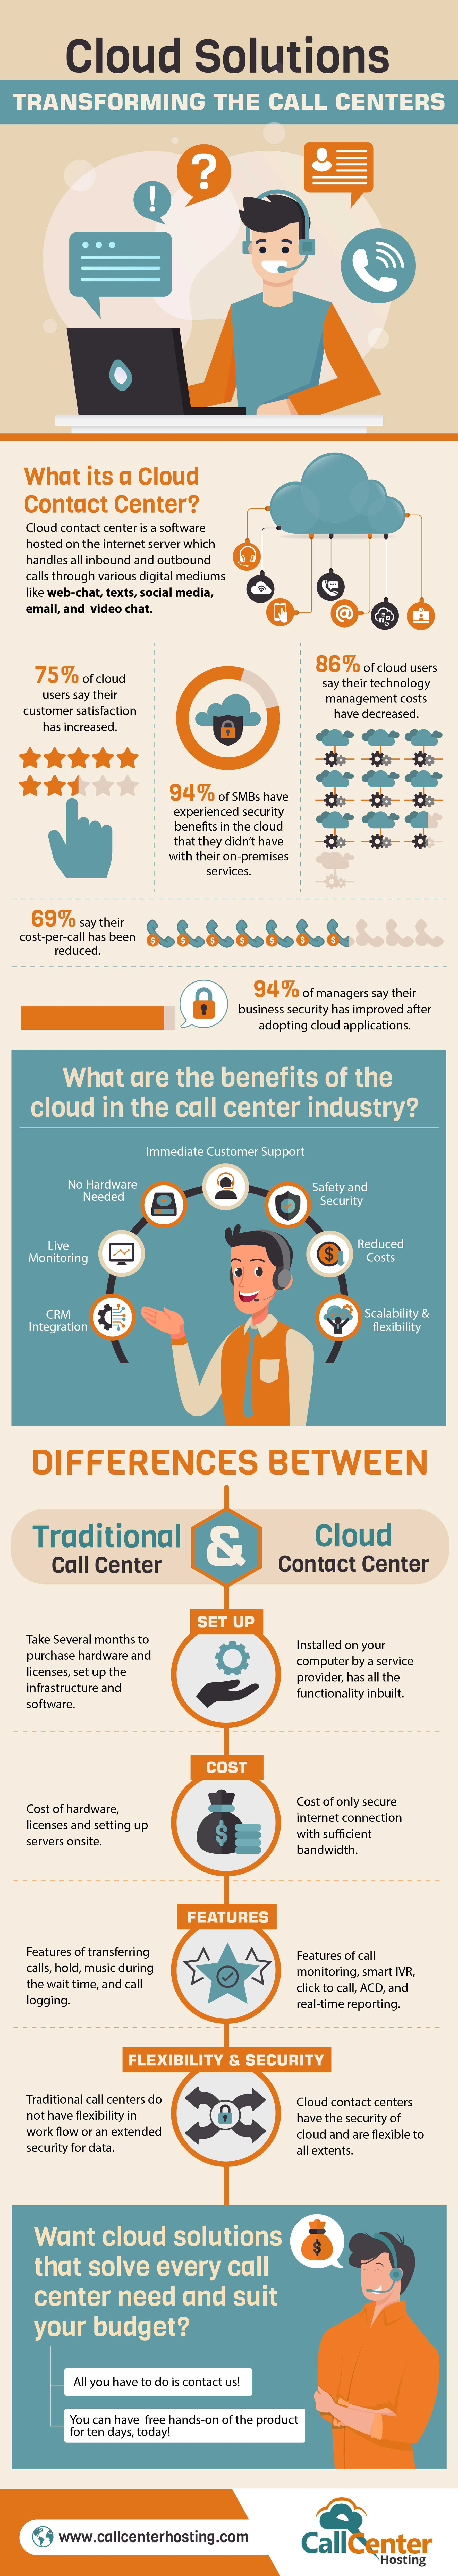 Infographic- Cloud Solutions: Transforming The Call Centers